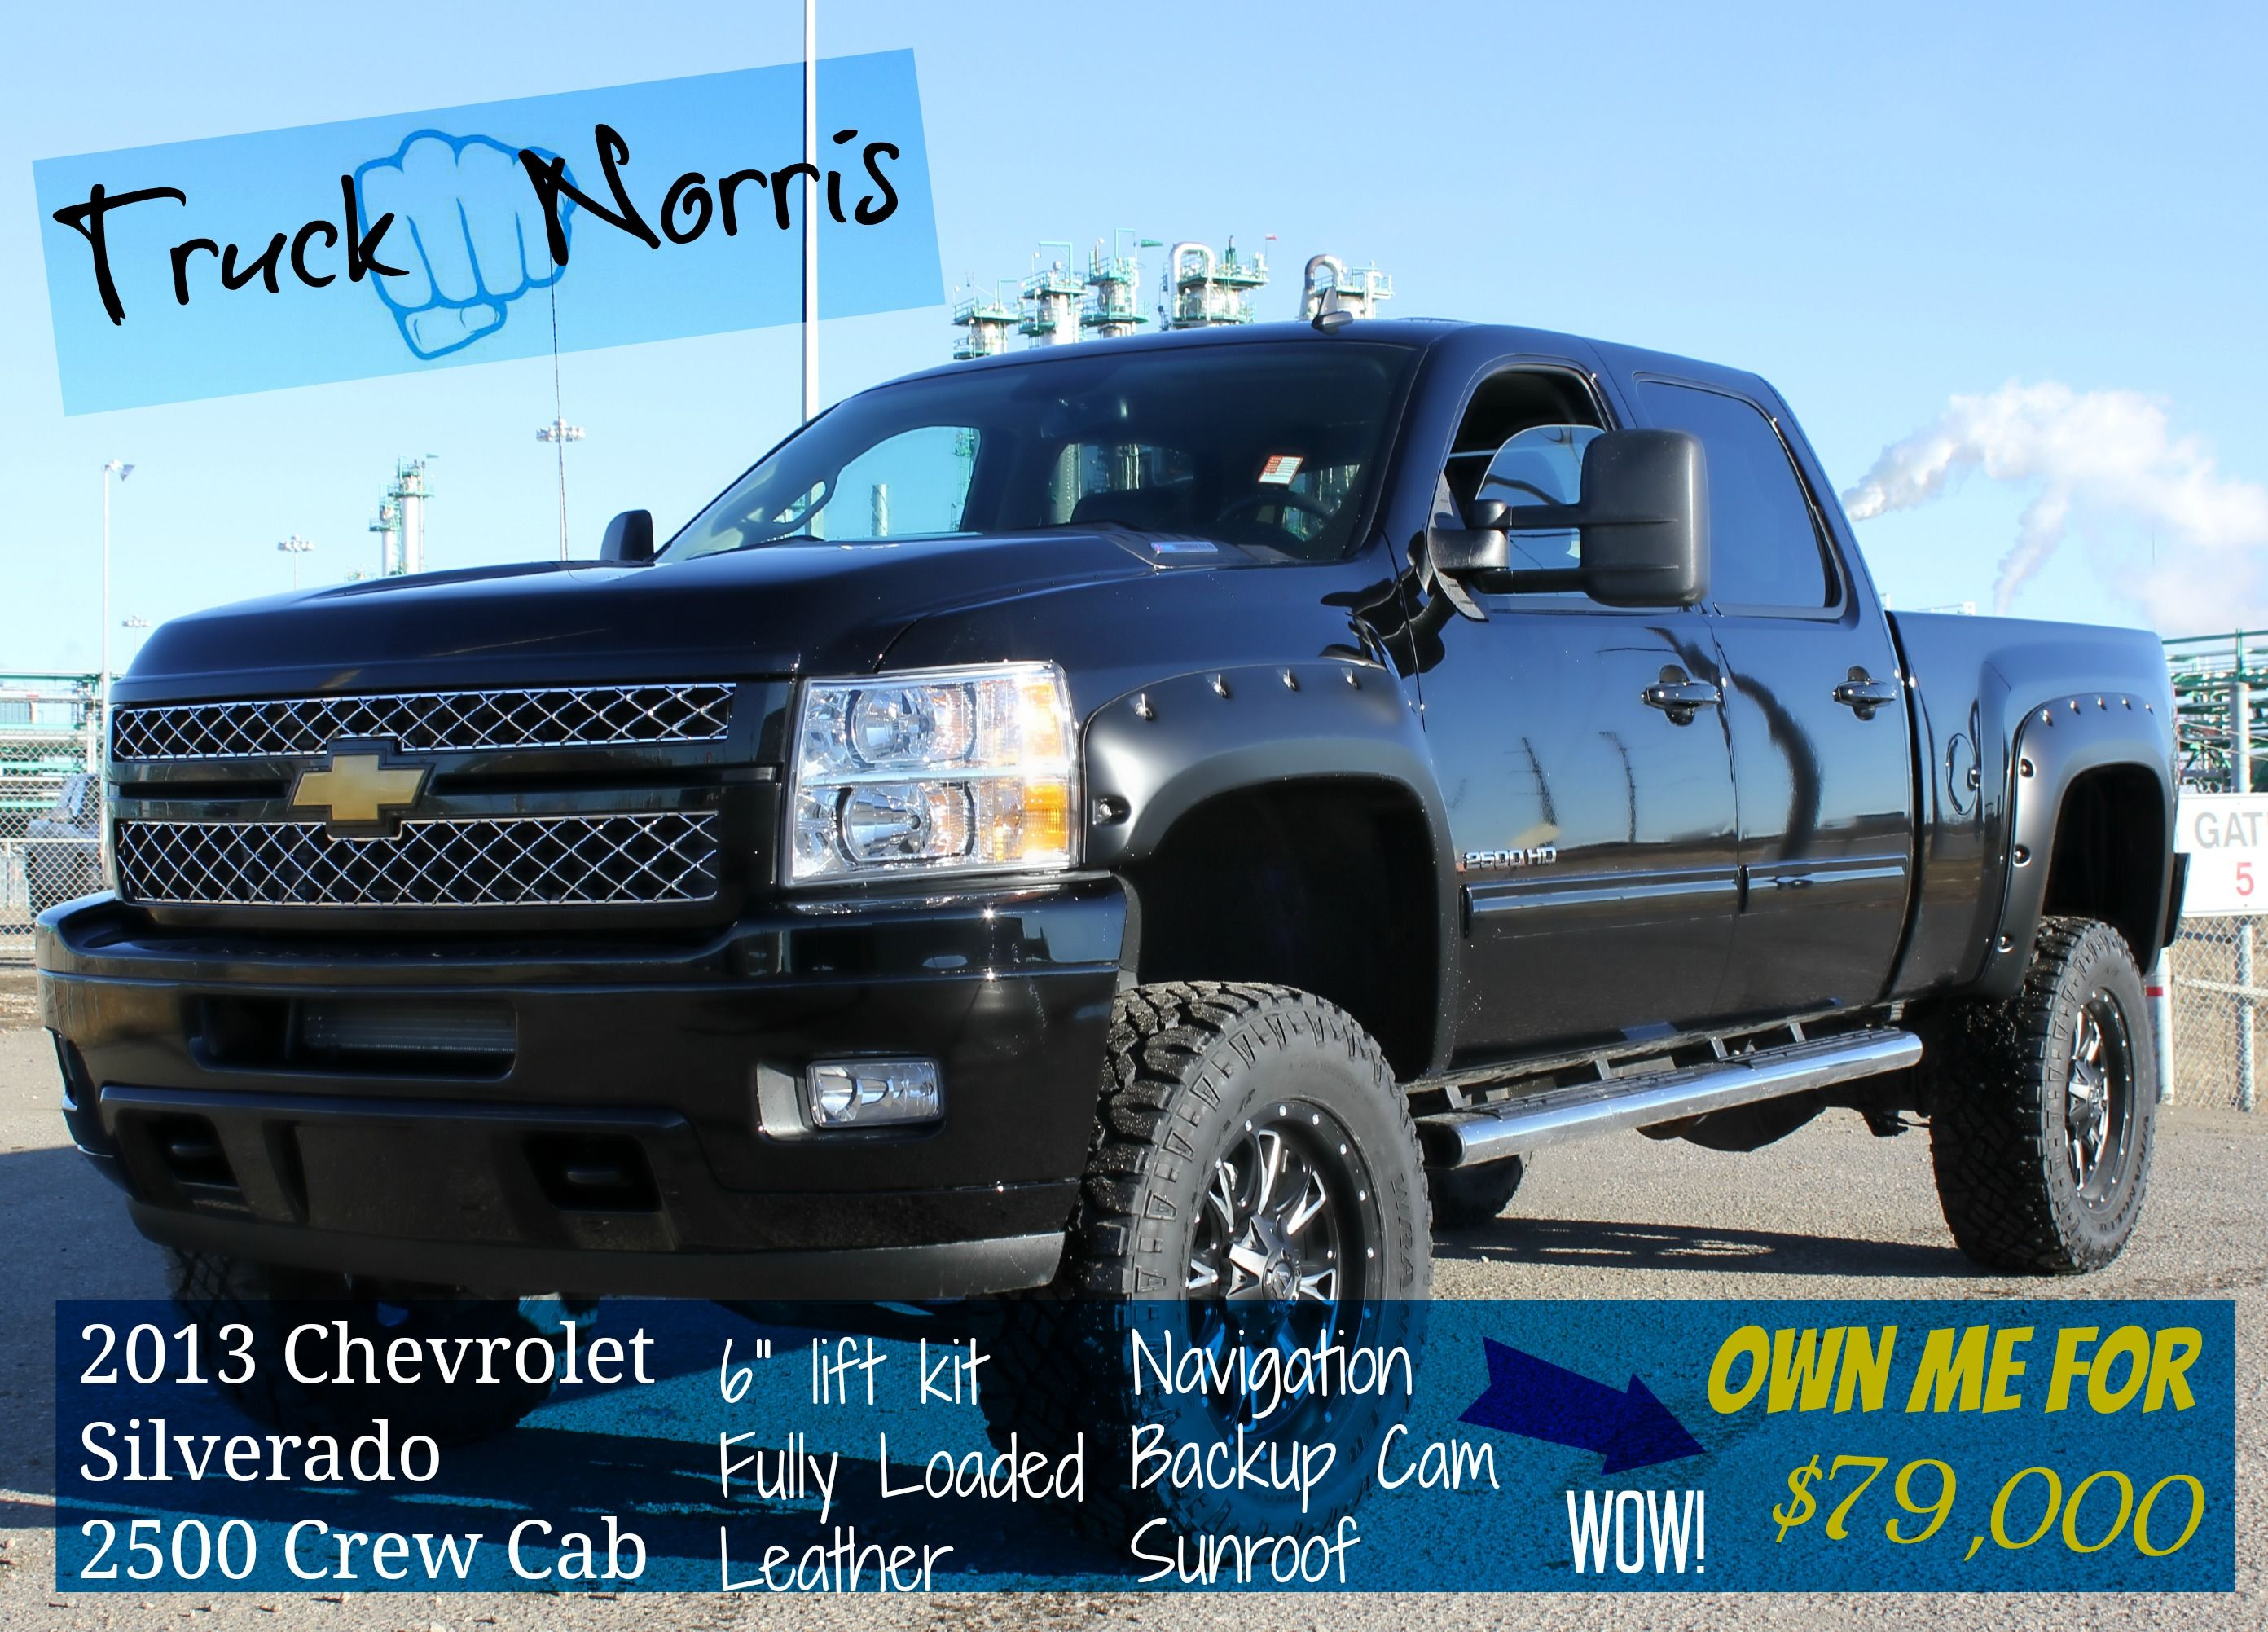 Truck norris chuck norris pun sick lookin chevy silverado with a 6 inch